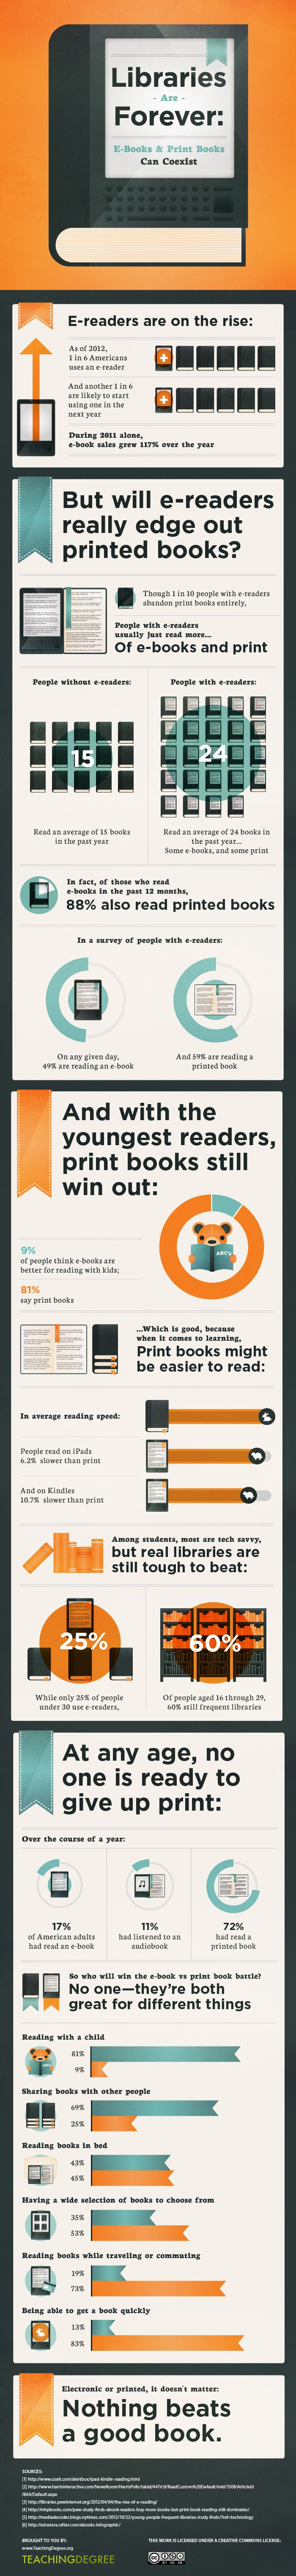 Ebooks & Print Booksgraphic